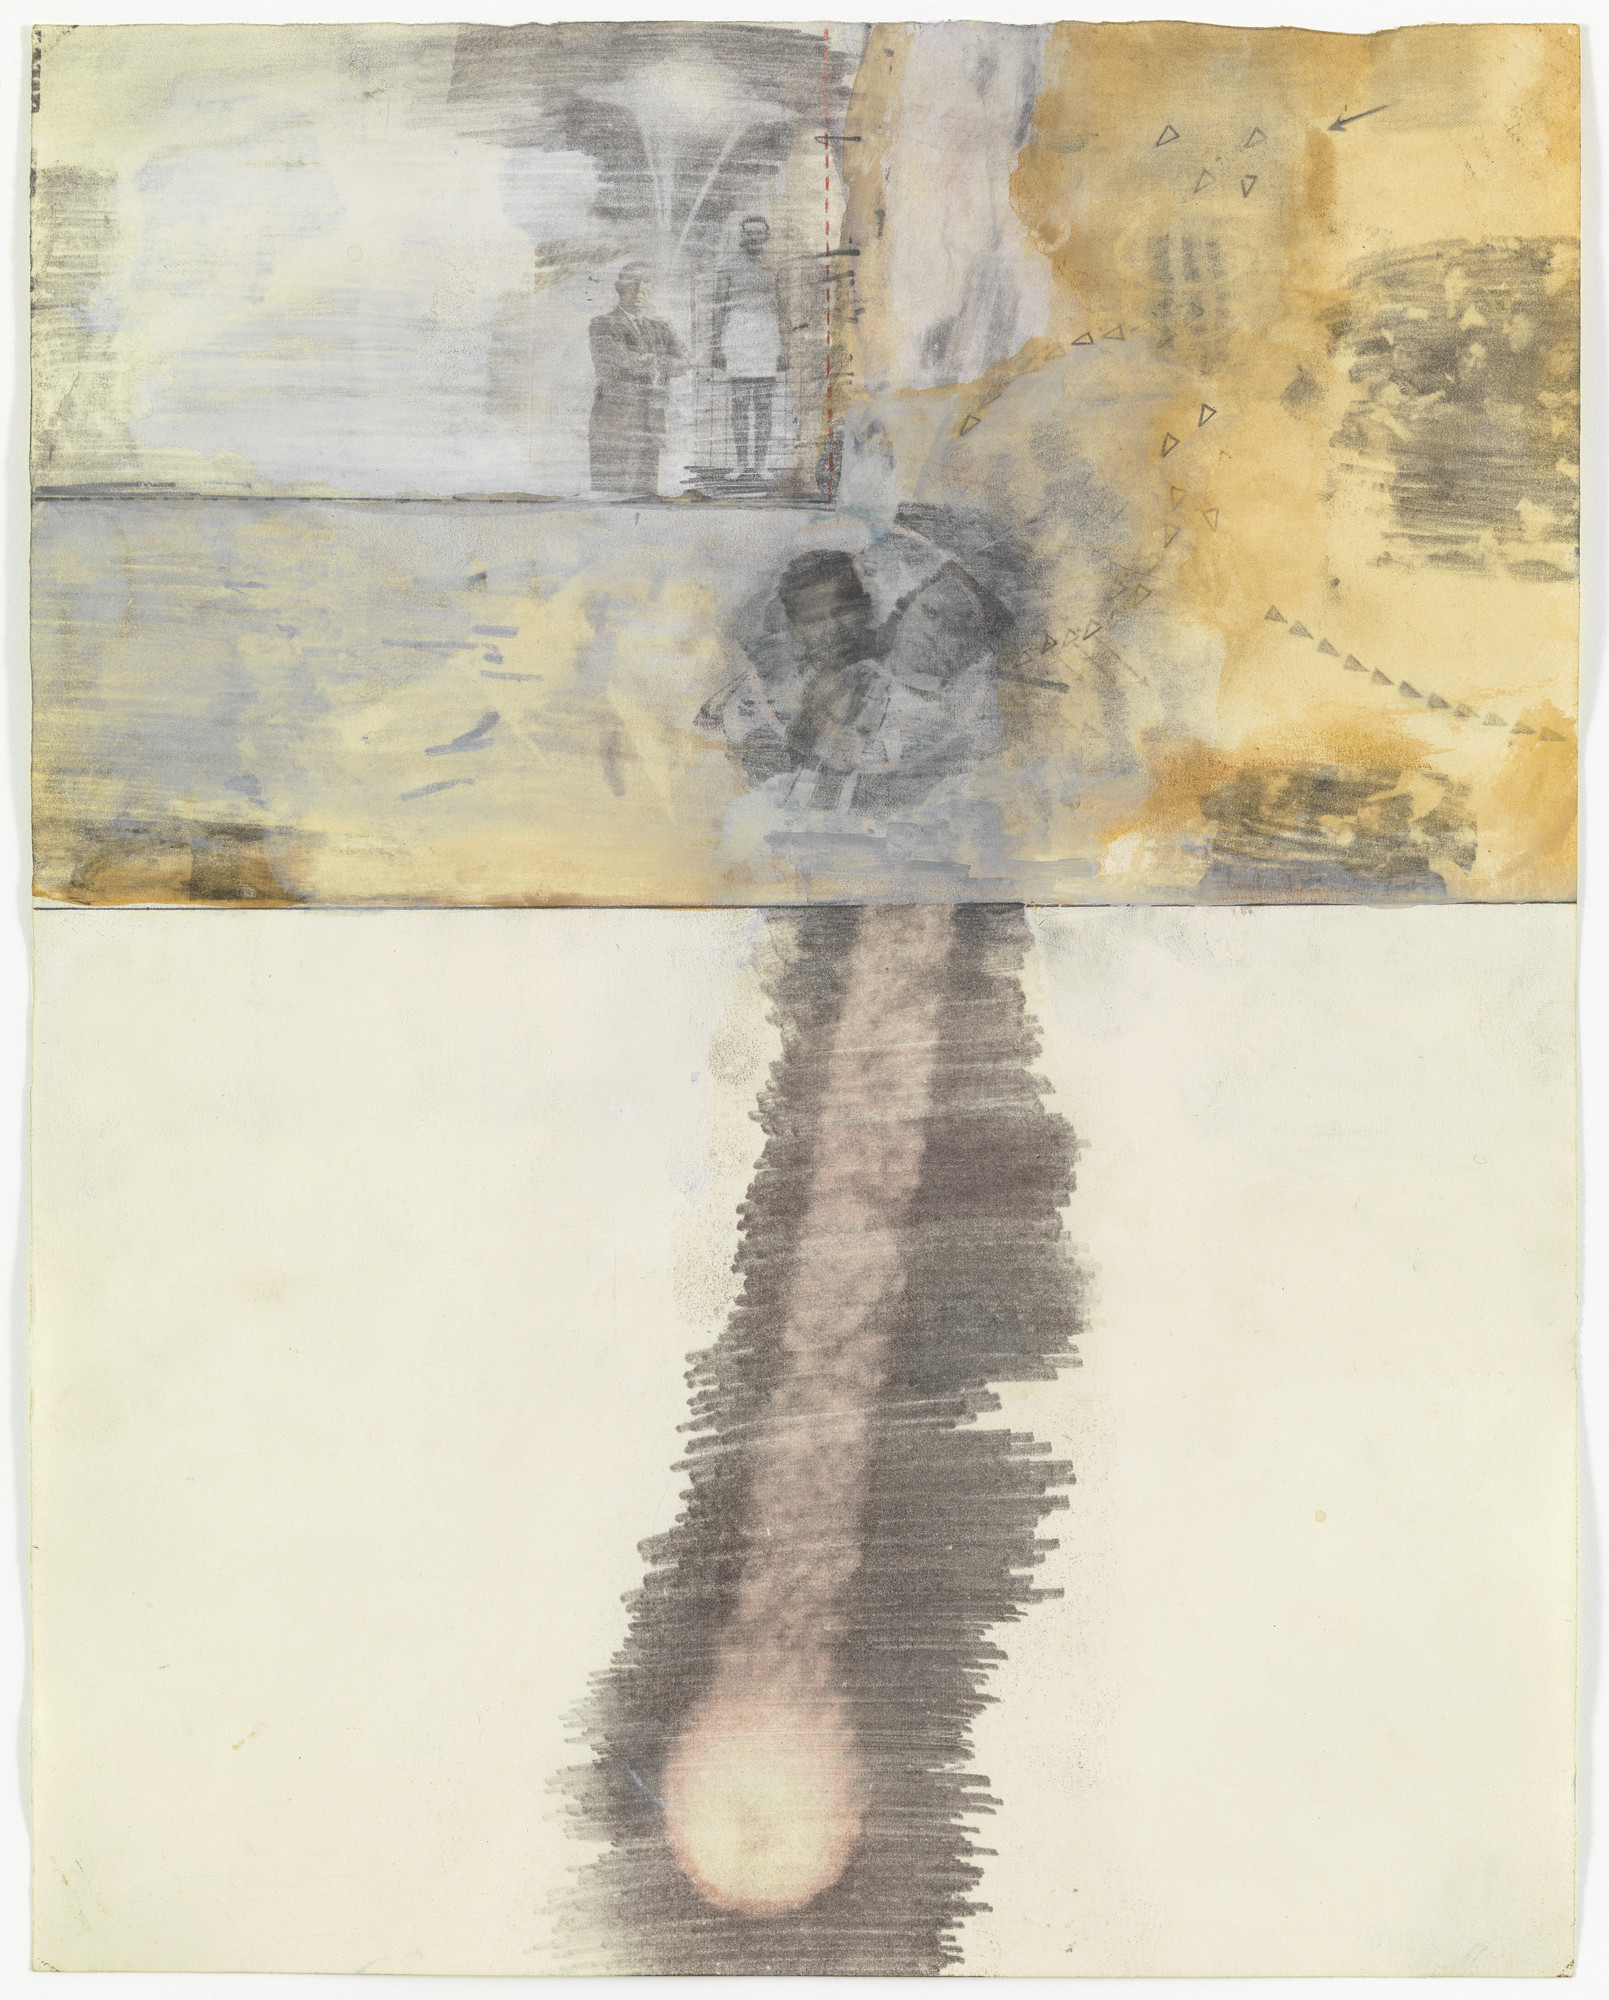 Robert Rauschenberg. Canto XVI: Circle Seven, Round 3, The Violent Against Nature and Art from the series Thirty-Four Illustrations for Dante's Inferno. (1959-60)